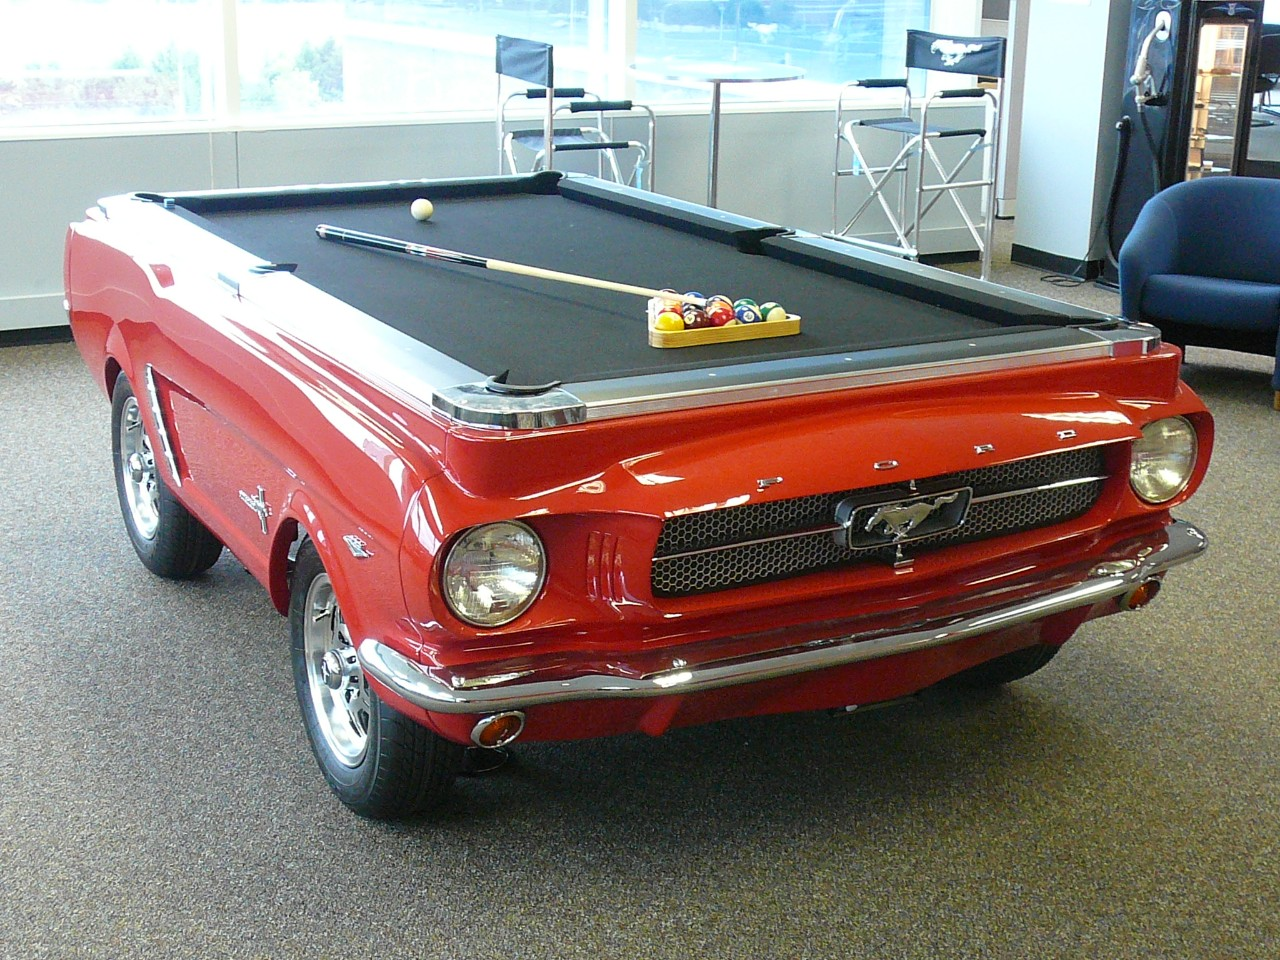 Interested In Having A 1965 Ford Mustang Pool Table You Can Get One